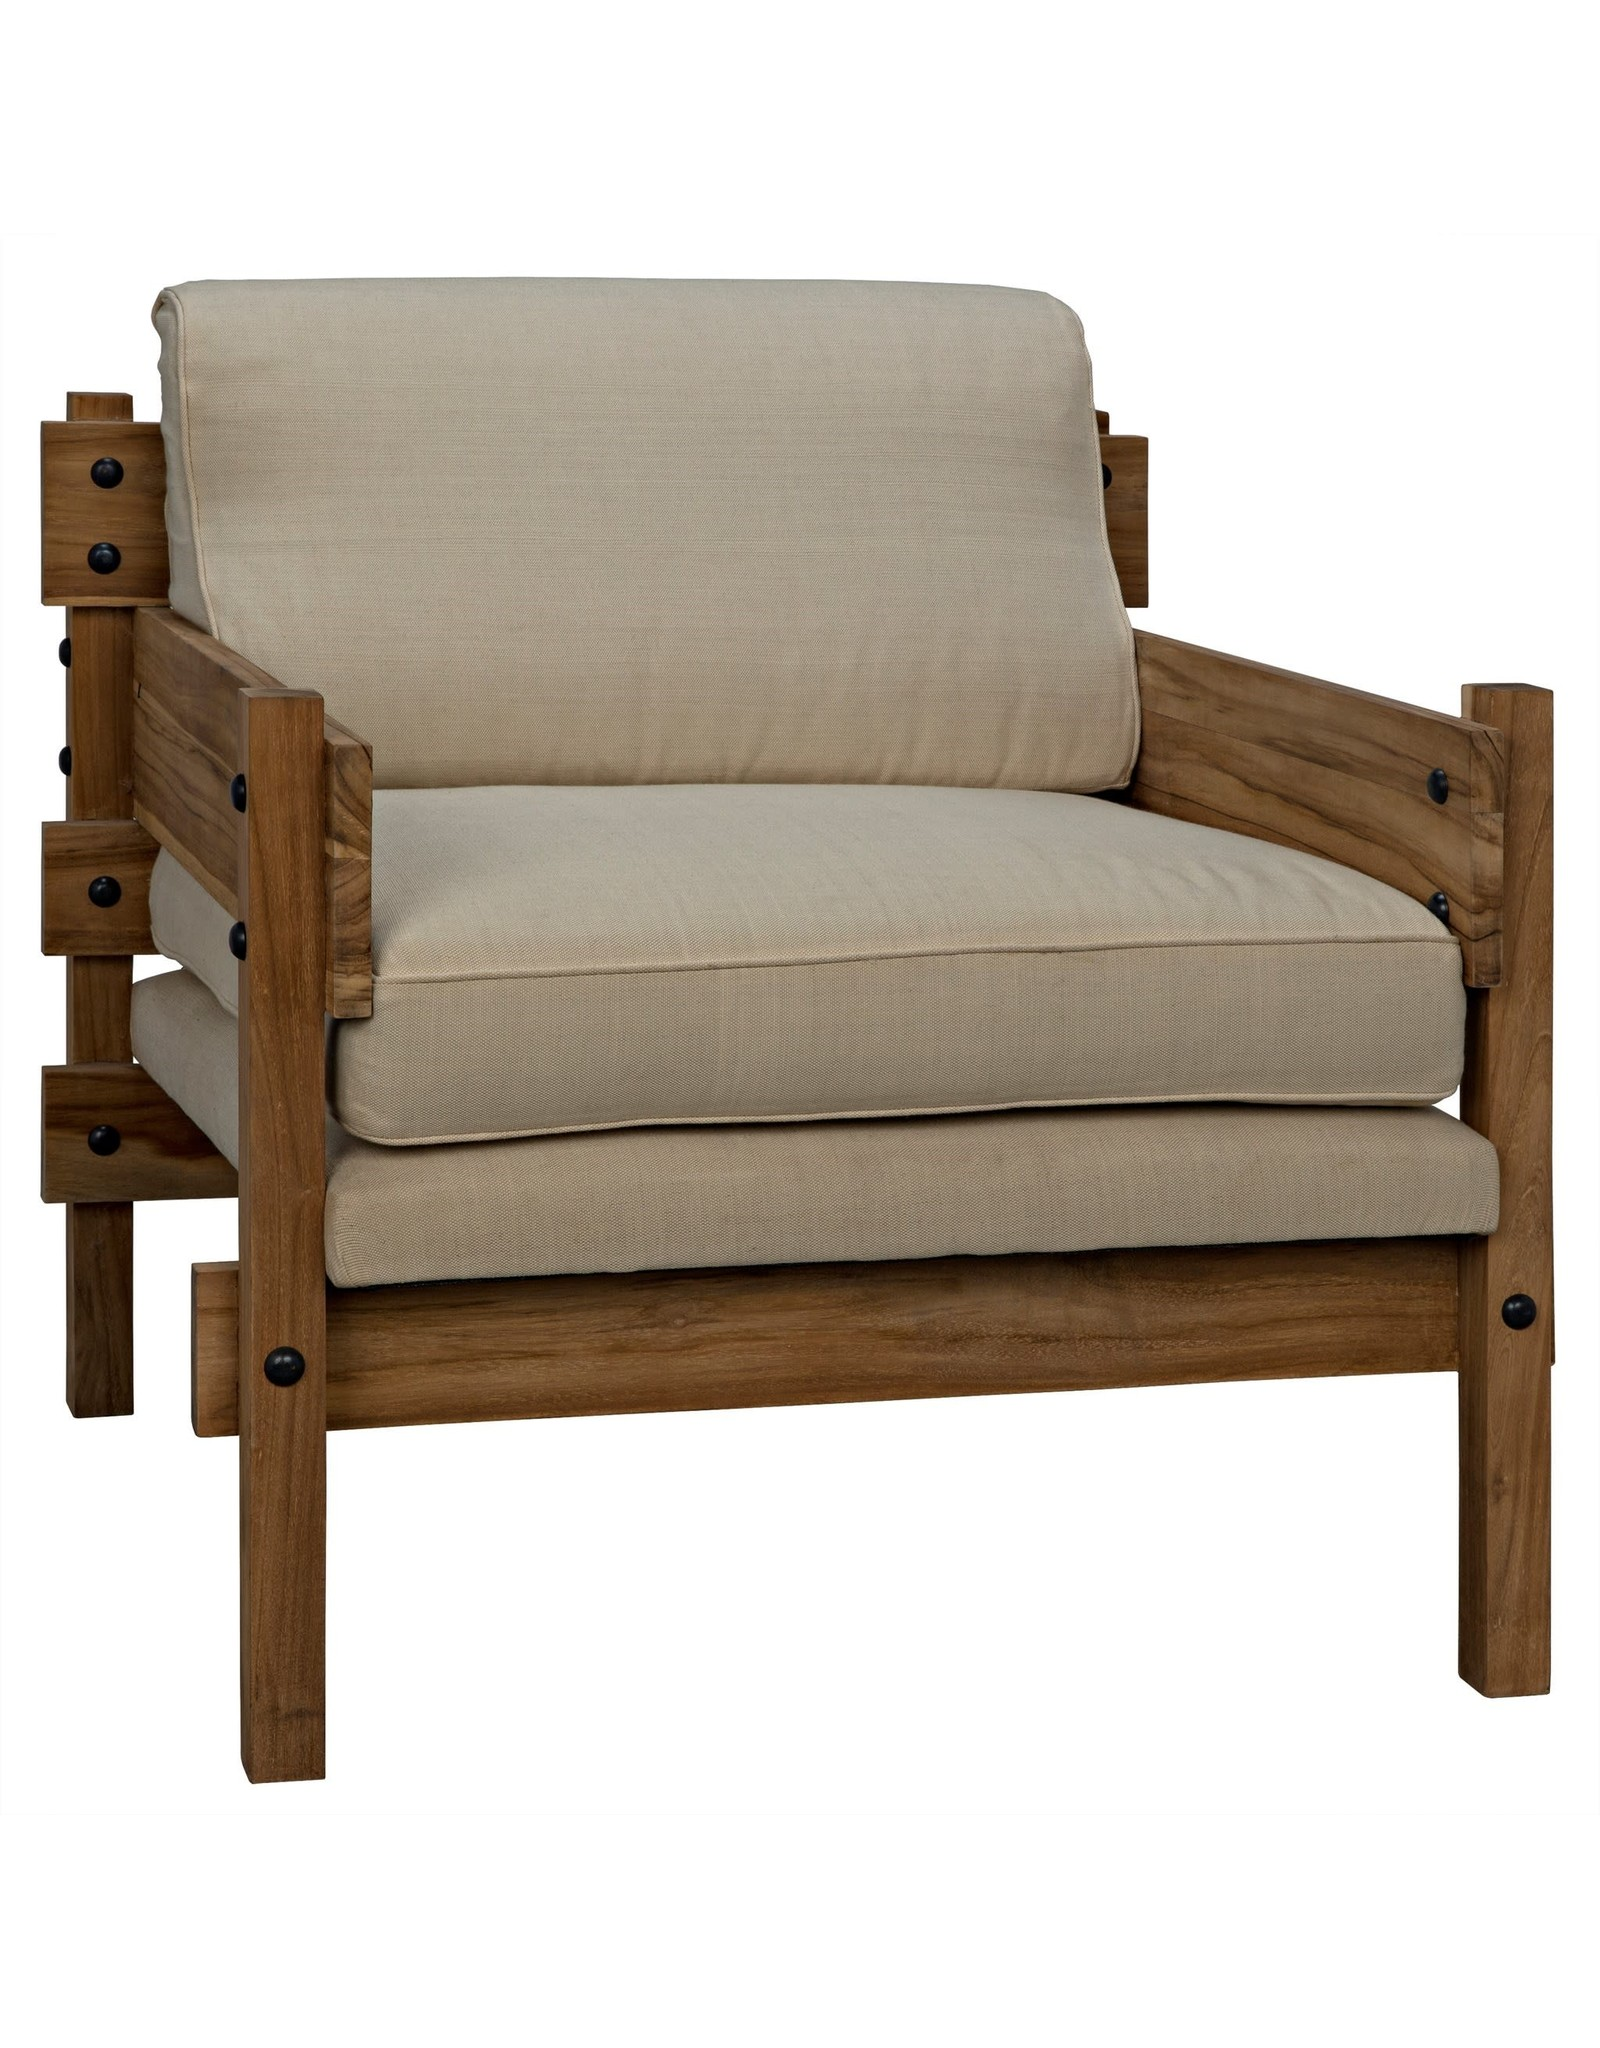 Website Noir Chalet Chair - Teak